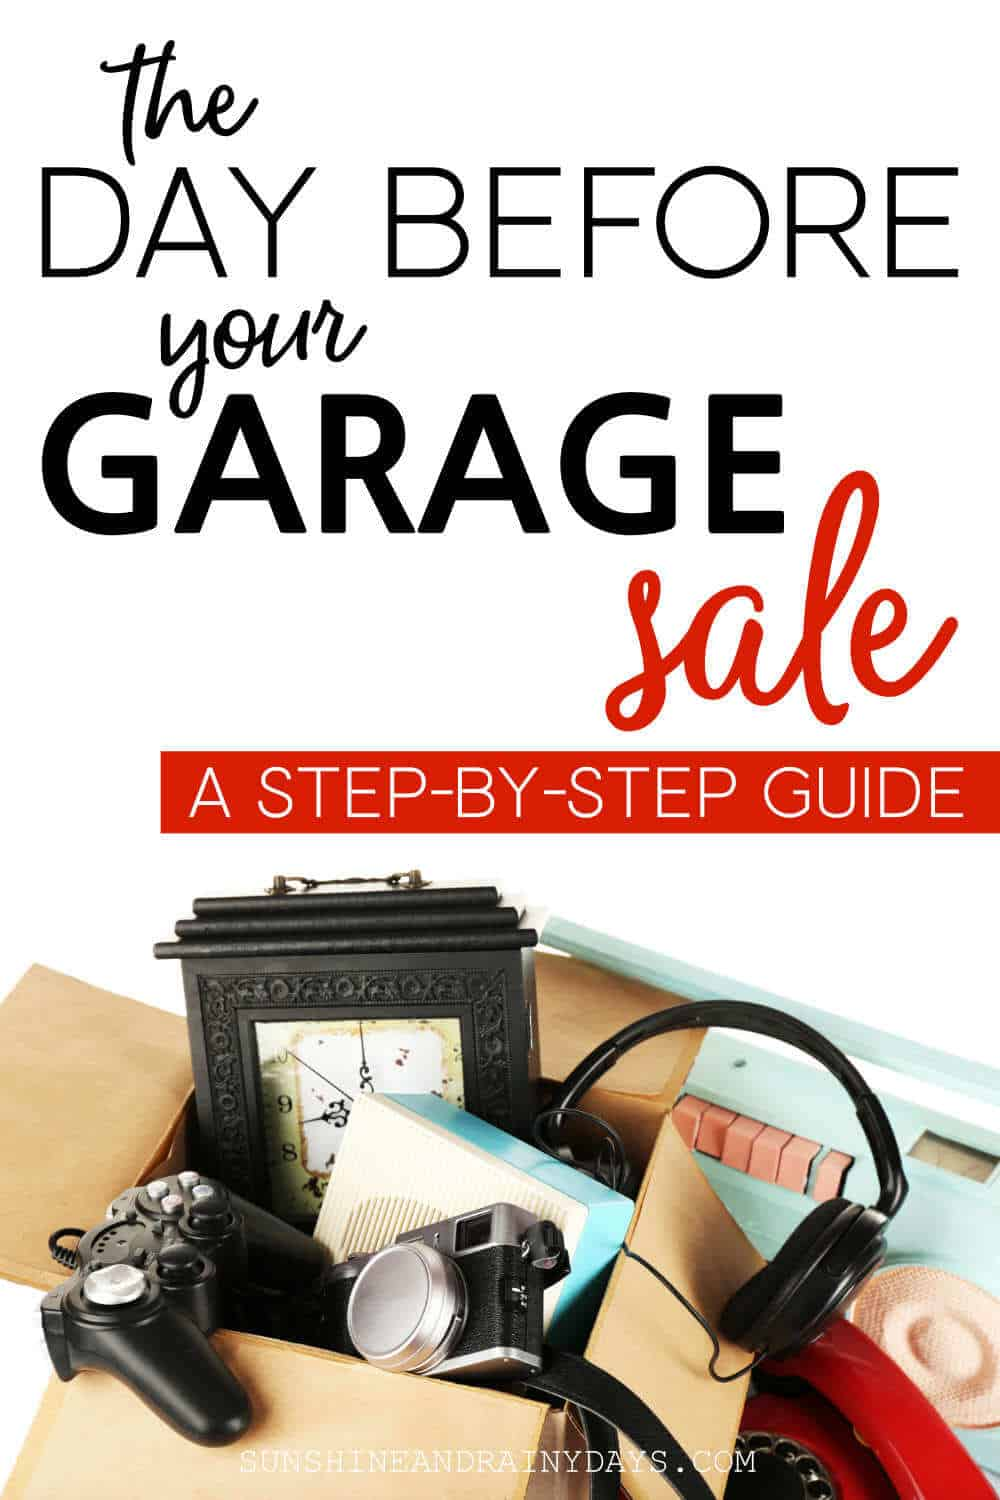 Garage Sale items in a box with the words: The Day Before Your Garage Sale